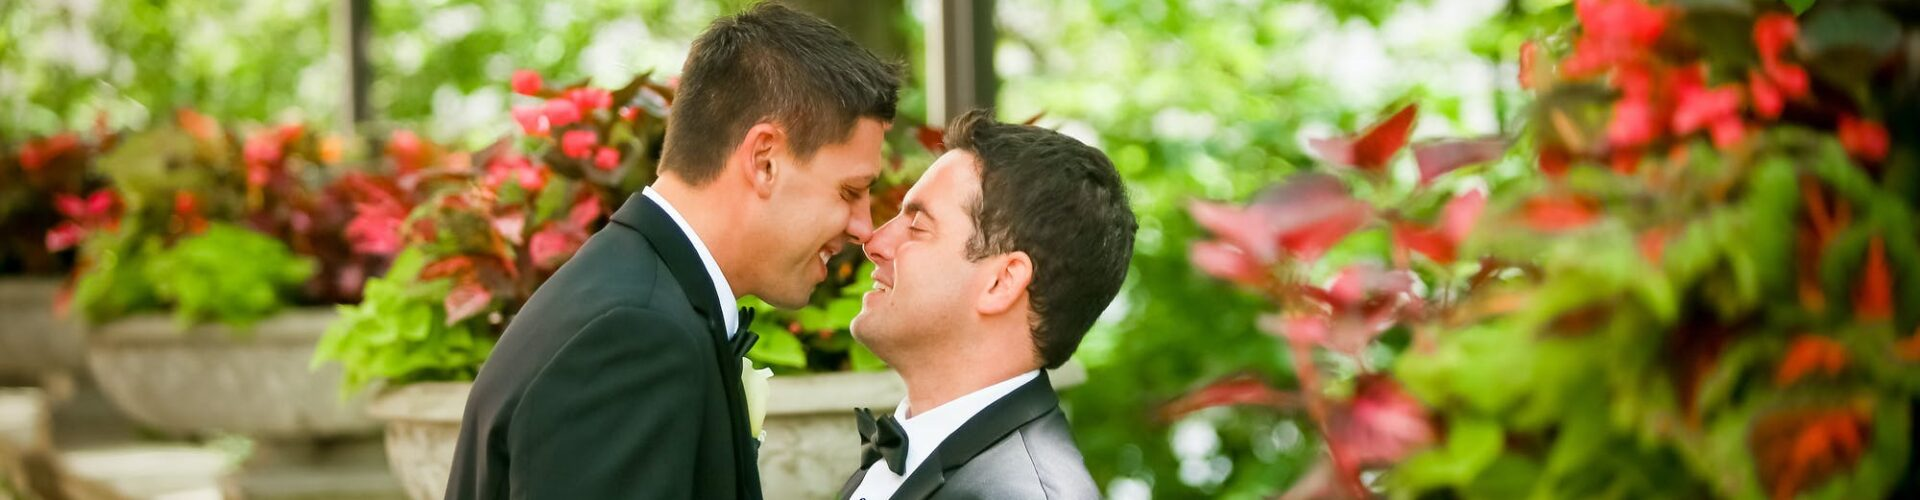 Tips on Getting Married in Chicago